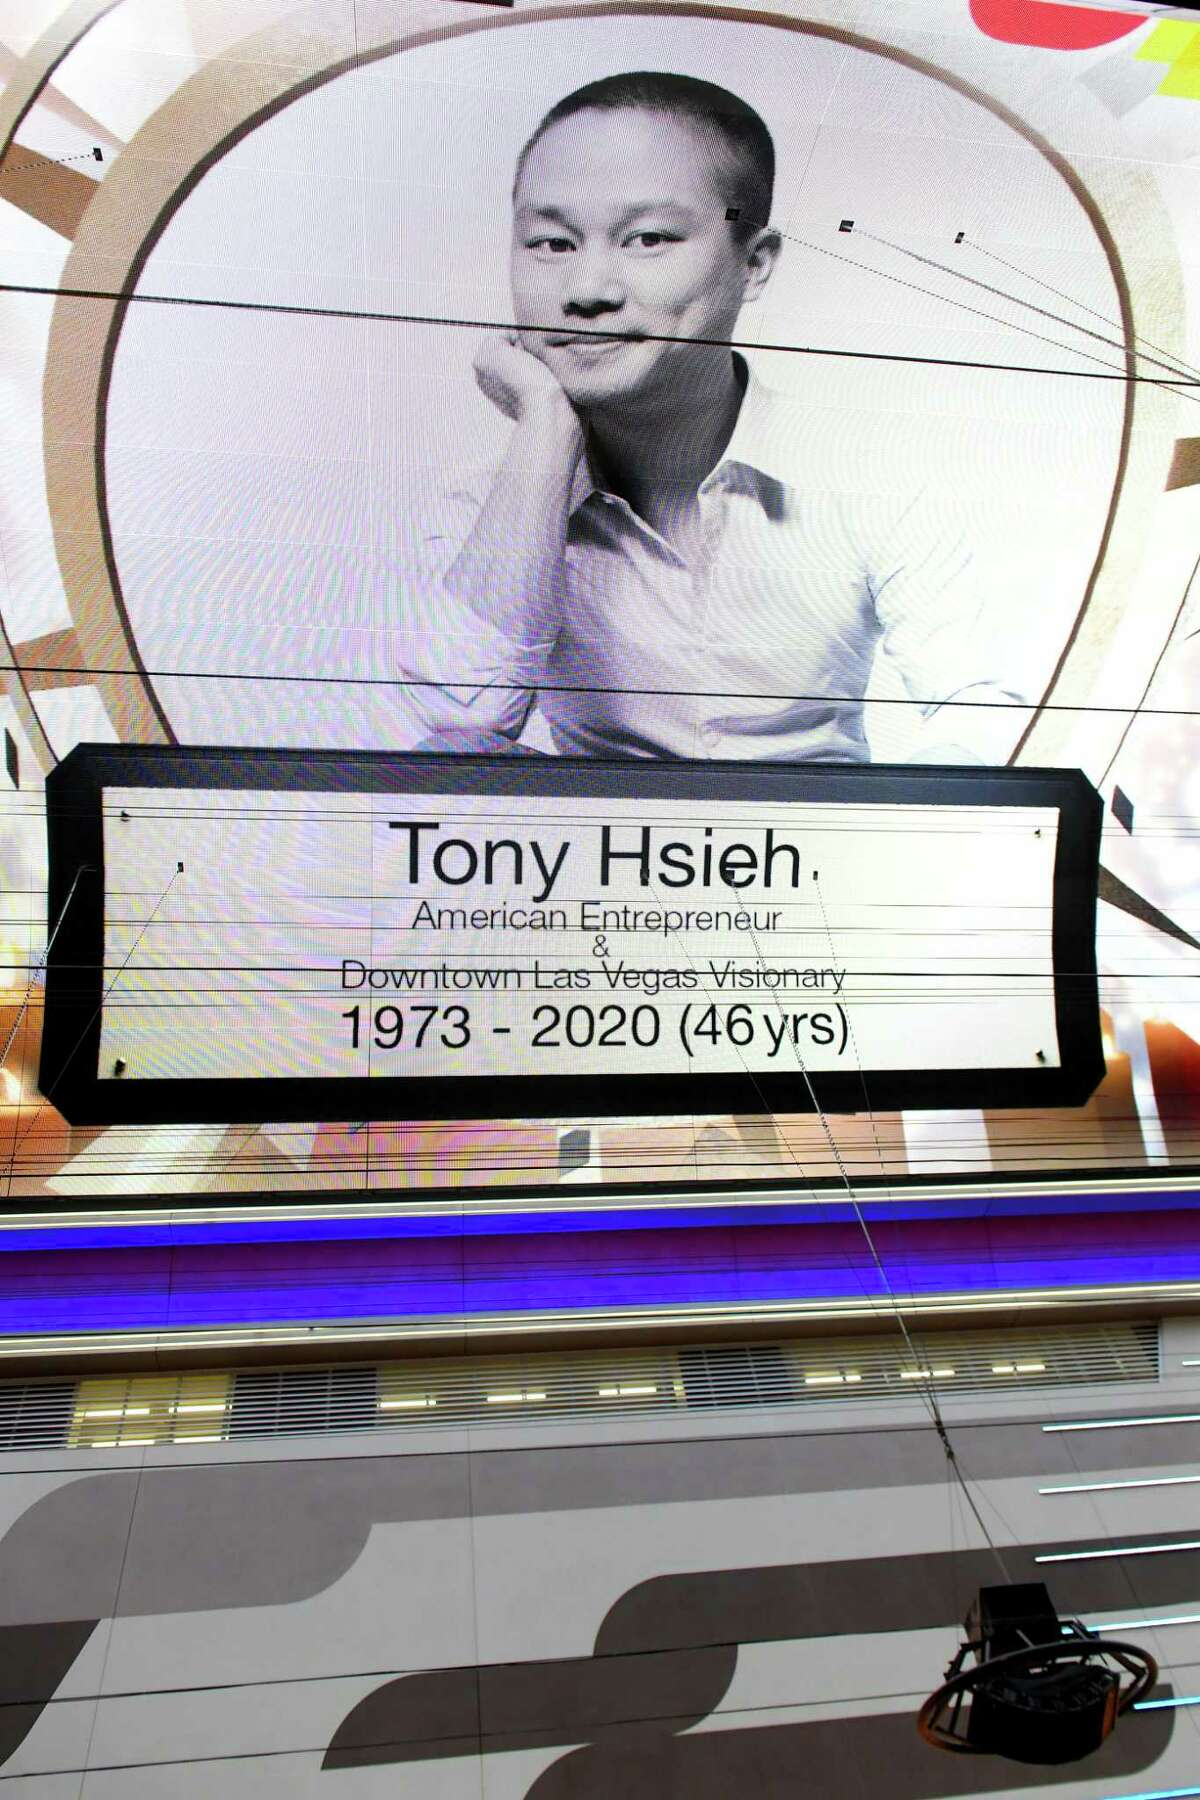 LAS VEGAS, NEVADA - NOVEMBER 28: A tribute to tech entrepreneur Tony Hsieh is displayed on the Fremont Street Experience attraction's Viva Vision screen on November 28, 2020 in Las Vegas, Nevada. Hsieh, the former CEO of Zappos.com, known for his role in the revitalization of downtown Las Vegas, died on November 27, 2020, at age 46.